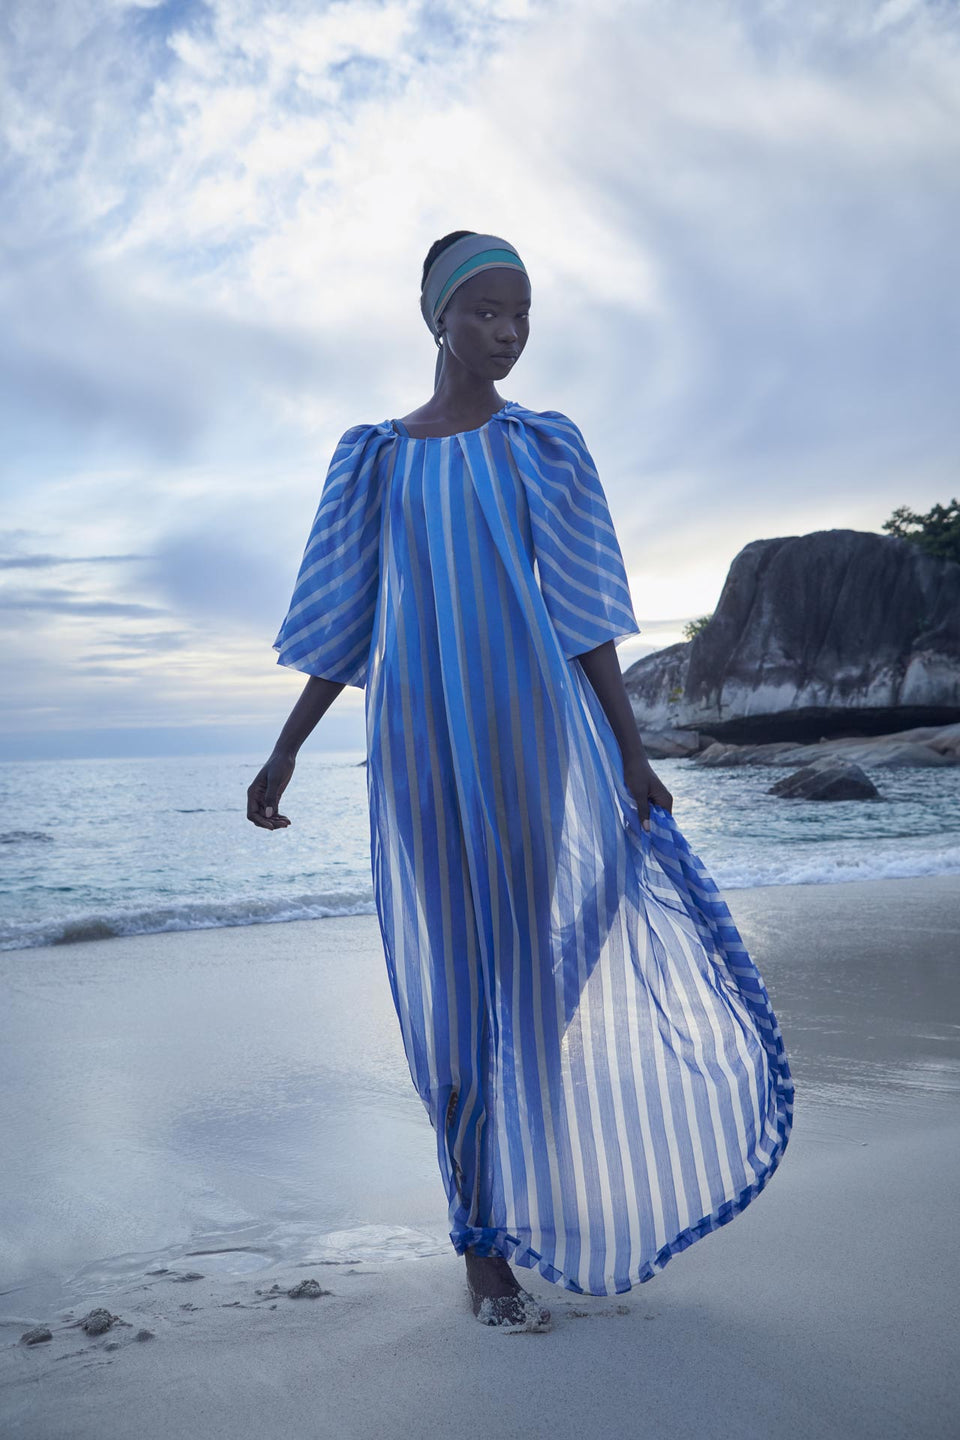 CARL KAPP SS2020 collection in Seychelles Six Senses Zil Pasyon | Mahe dress